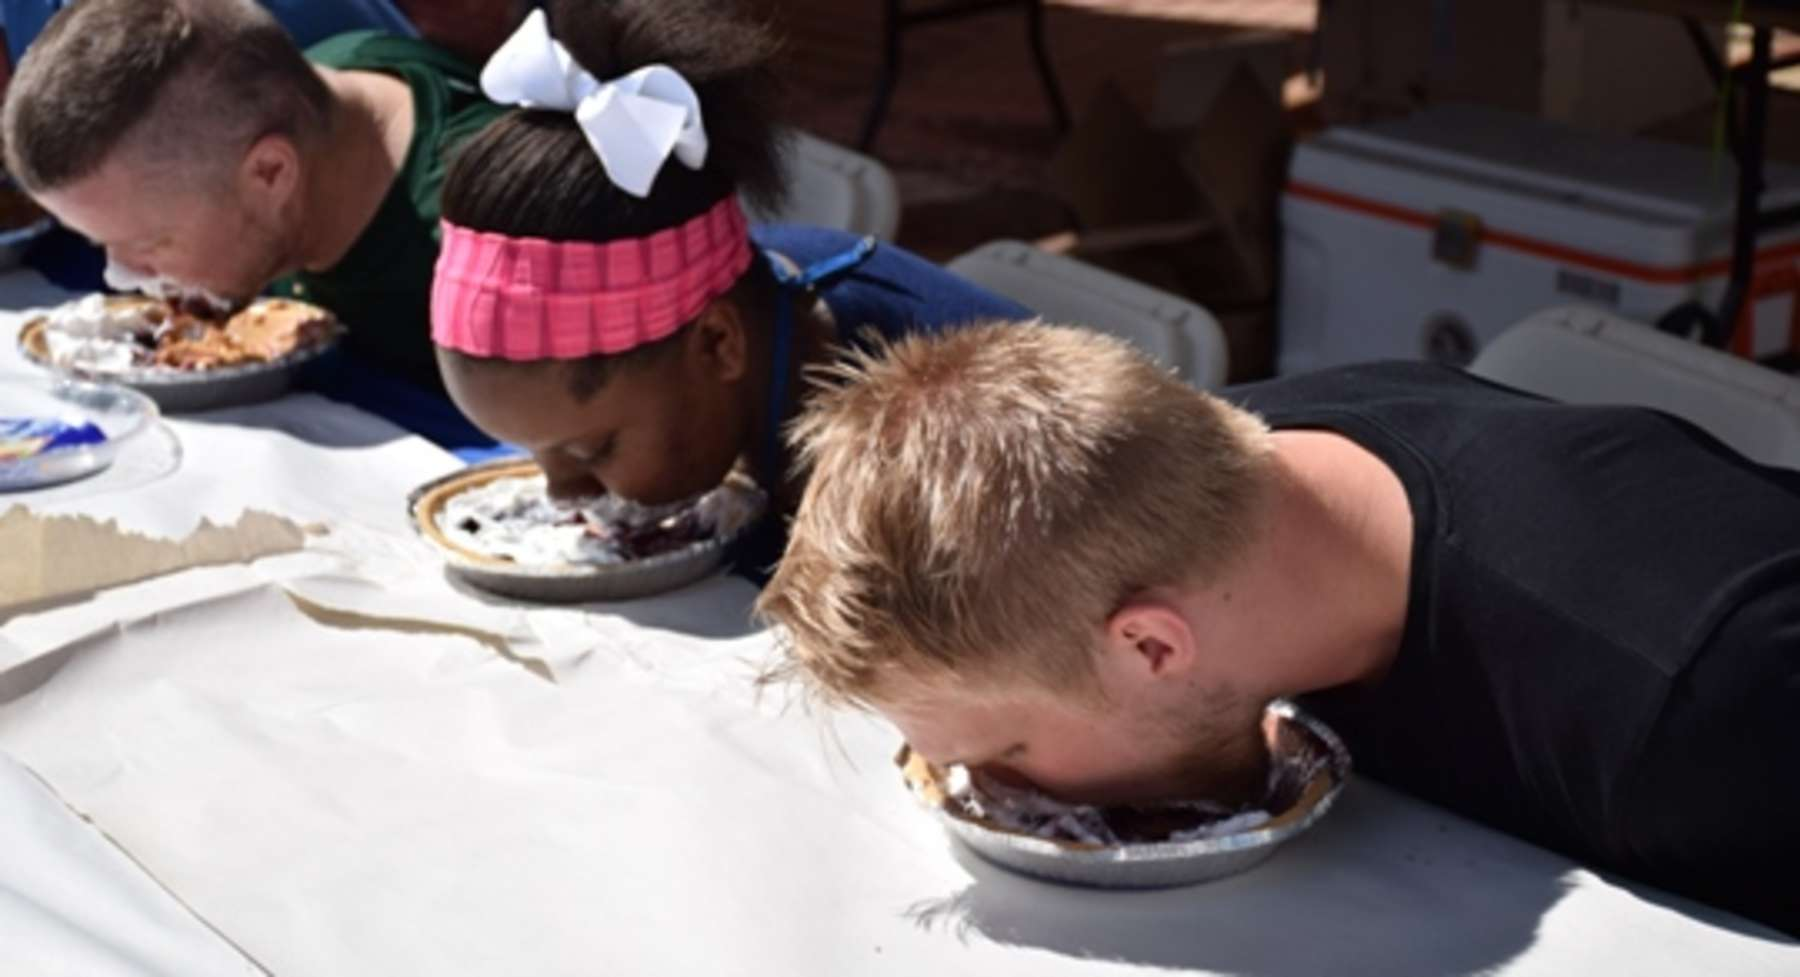 BBF pie eating contest